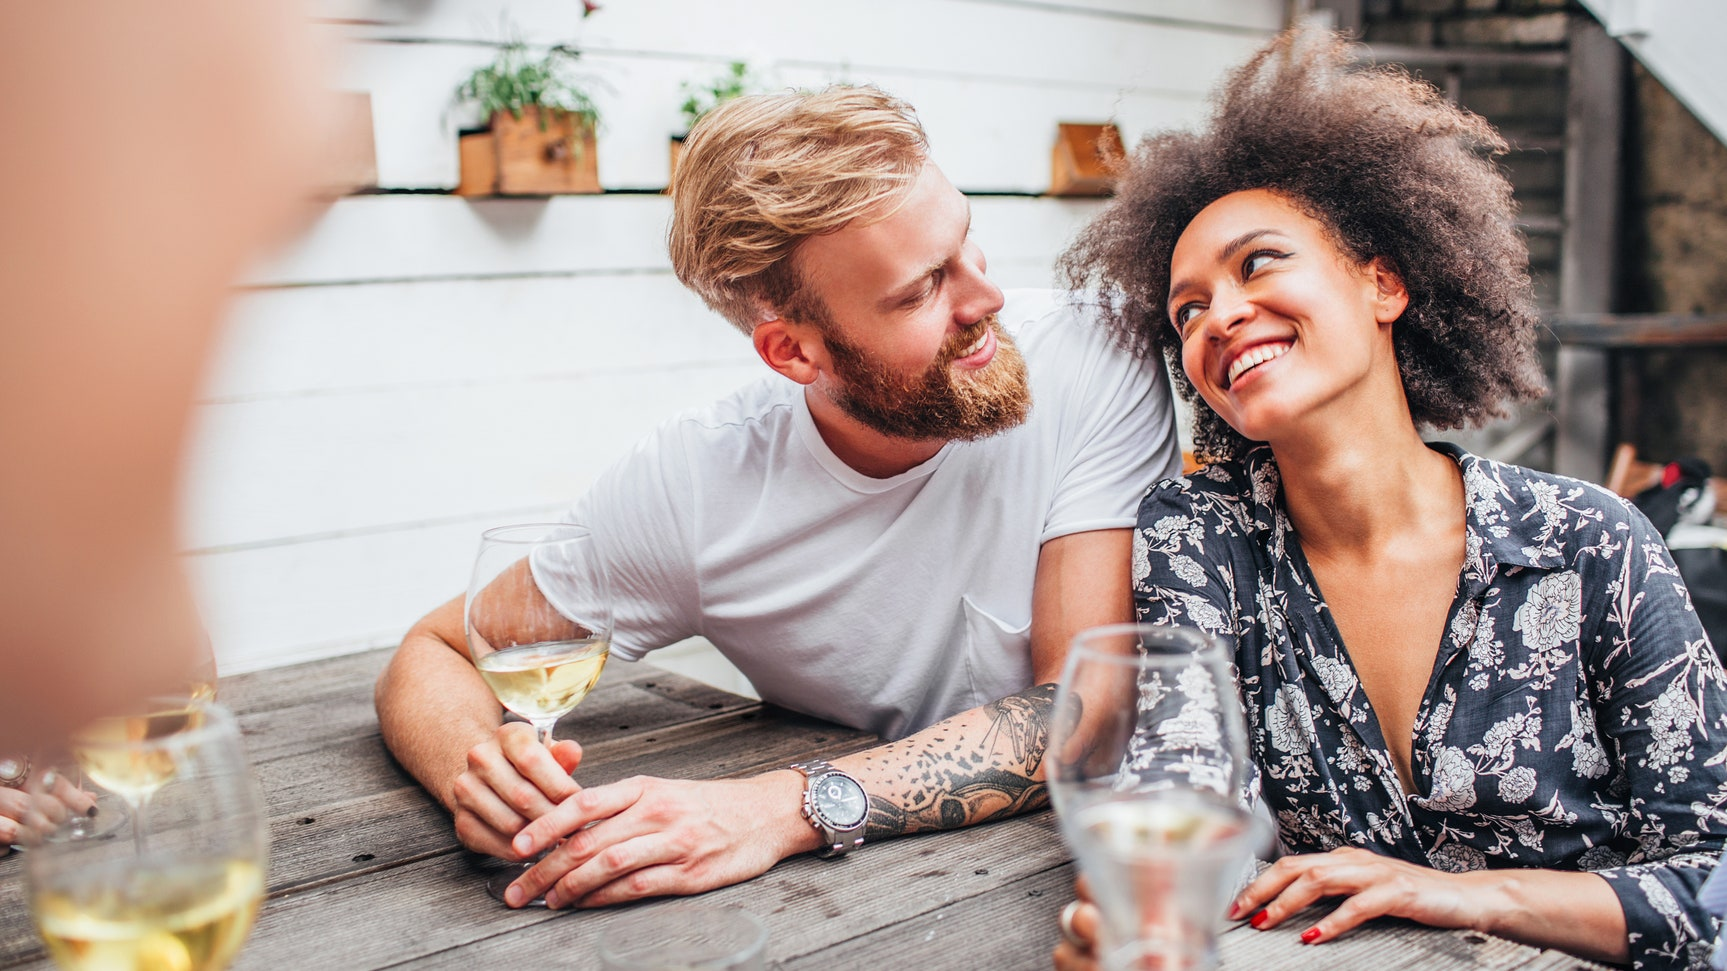 dating things to introvert know an when